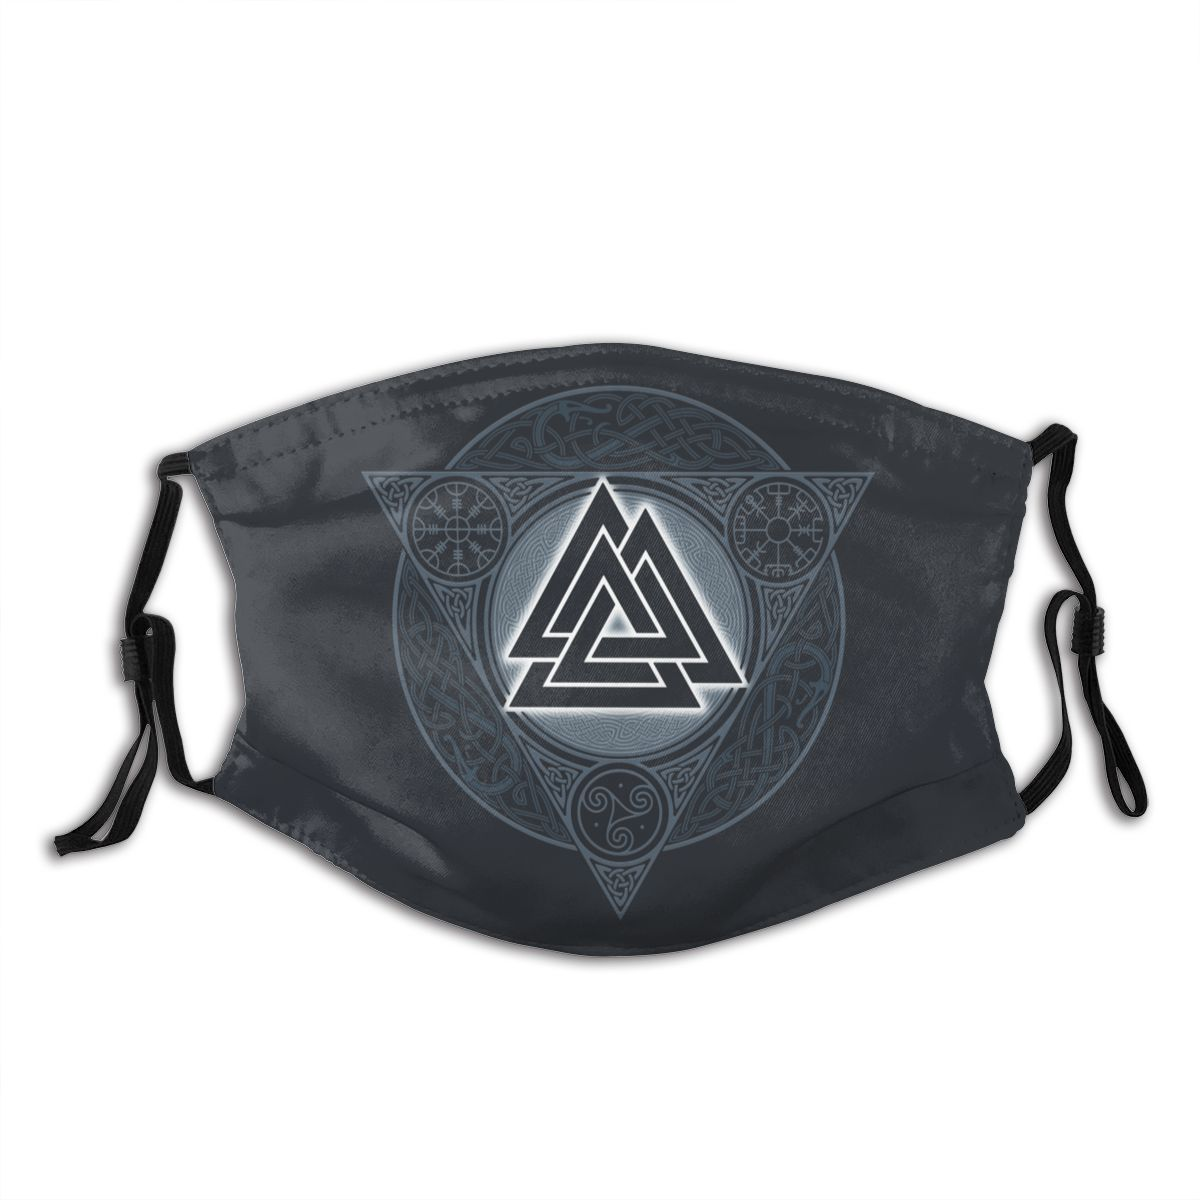 Valknut Ice Flame Vikings Valhalla Odin Reusable Mouth Face Mask With Filter Anti Haze Dust Mask Respirator Mouth Muffle